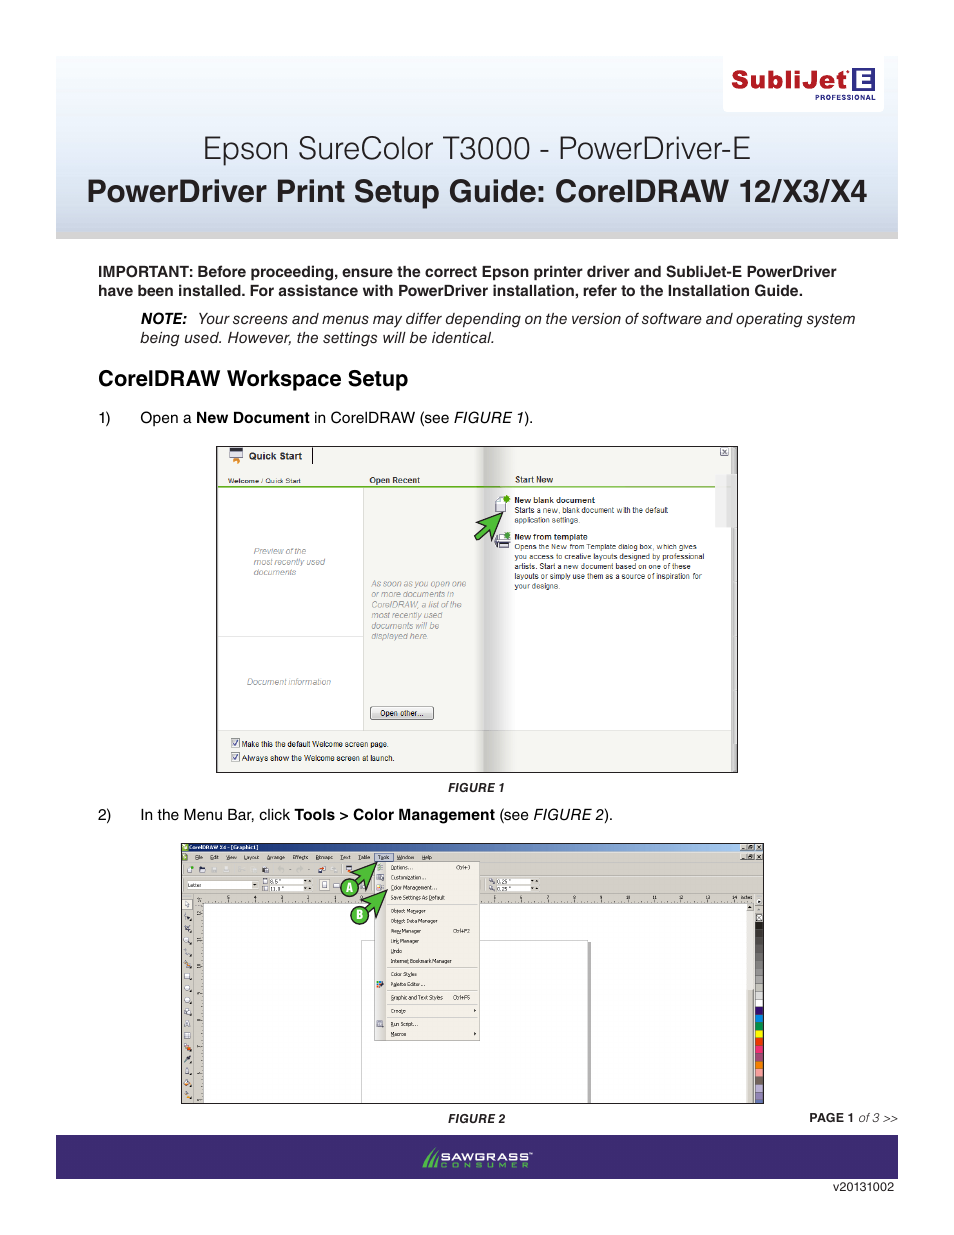 Coreldraw version 12 - Xpres Sublijet E Epson Surecolor T3000 Power Driver Setup Print Setup Guide Coreldraw 12 X4 User Manual 3 Pages